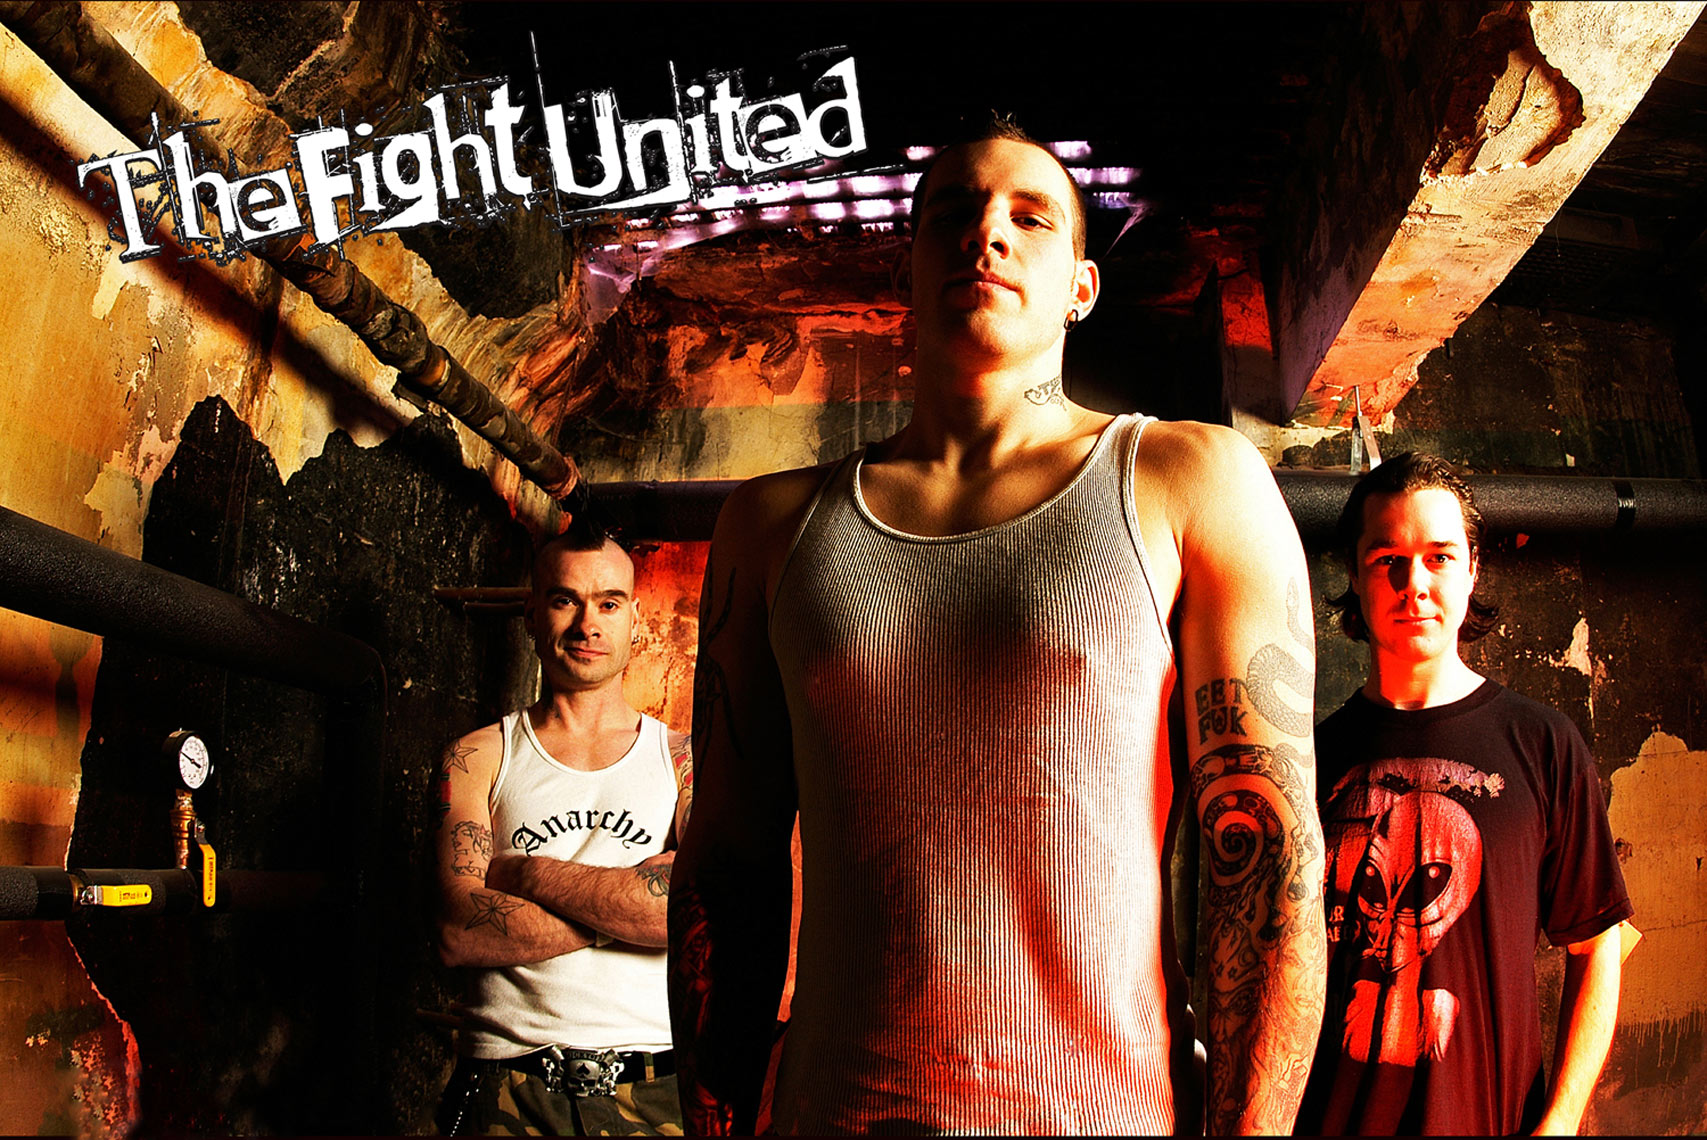 THE-FIGHT-UNITED - Band